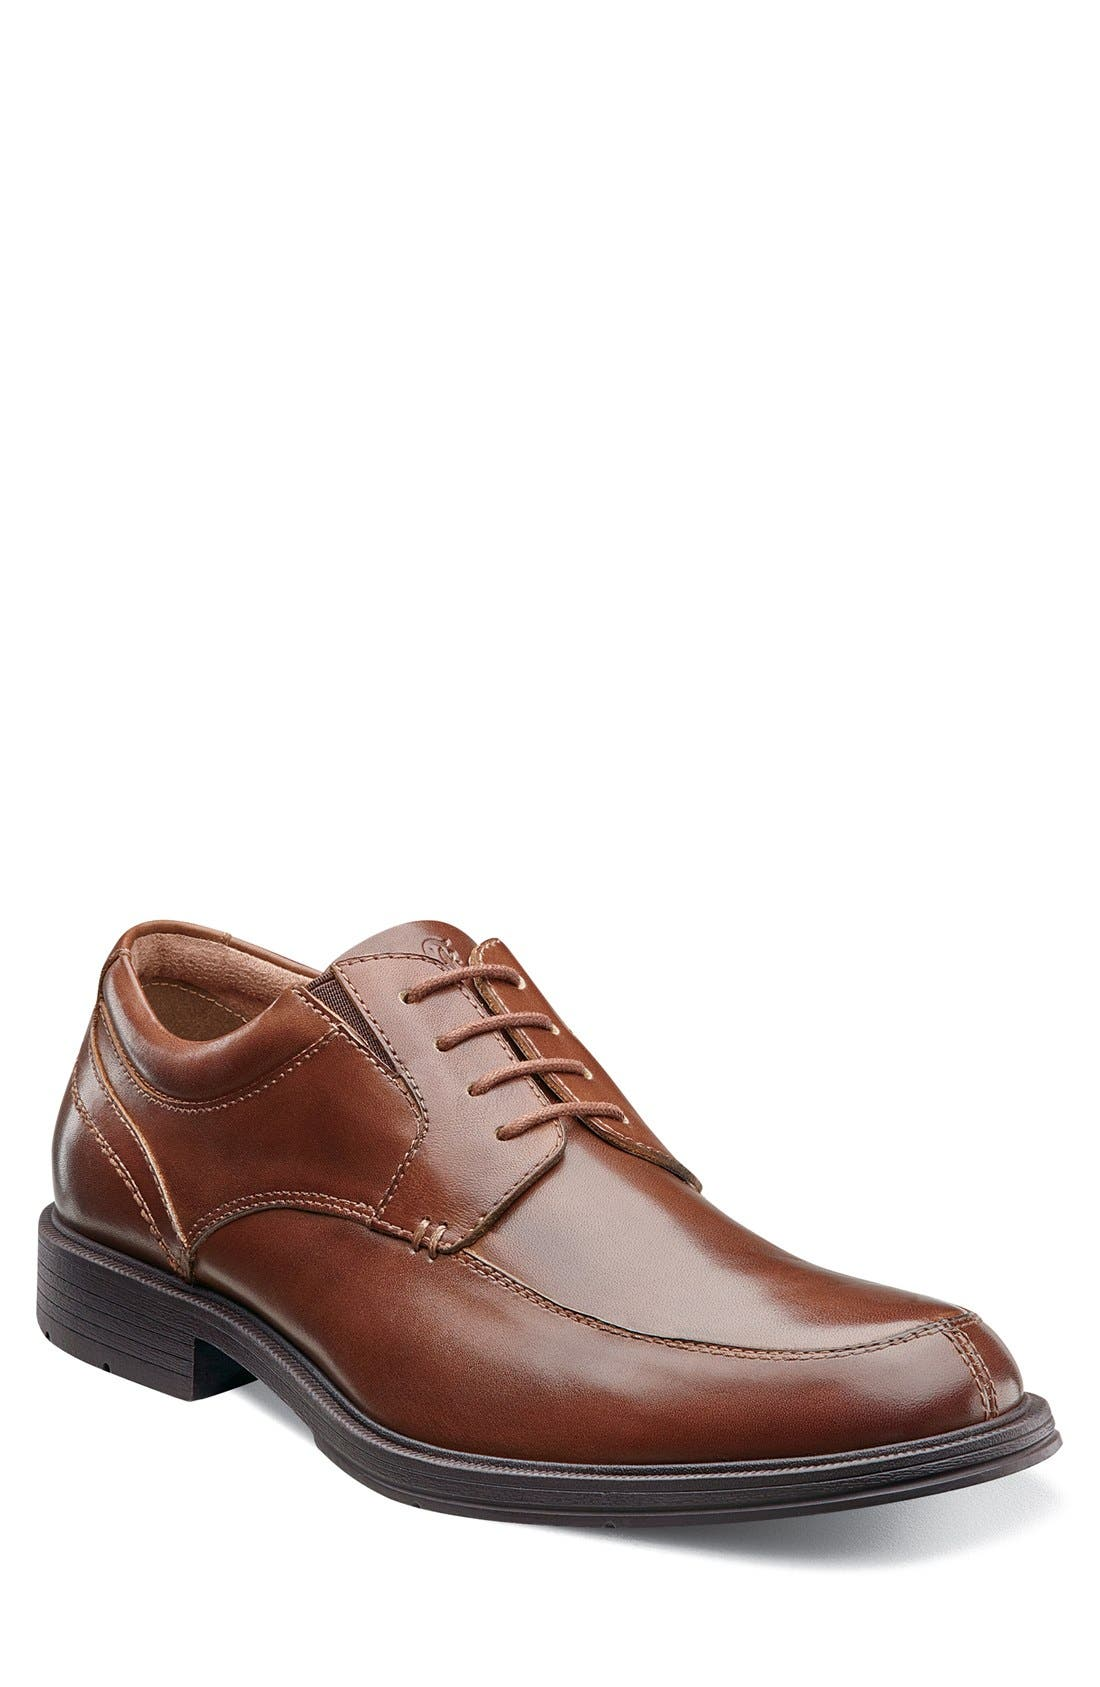 'Mogul' Split Toe Derby,                             Main thumbnail 1, color,                             Medium Brown